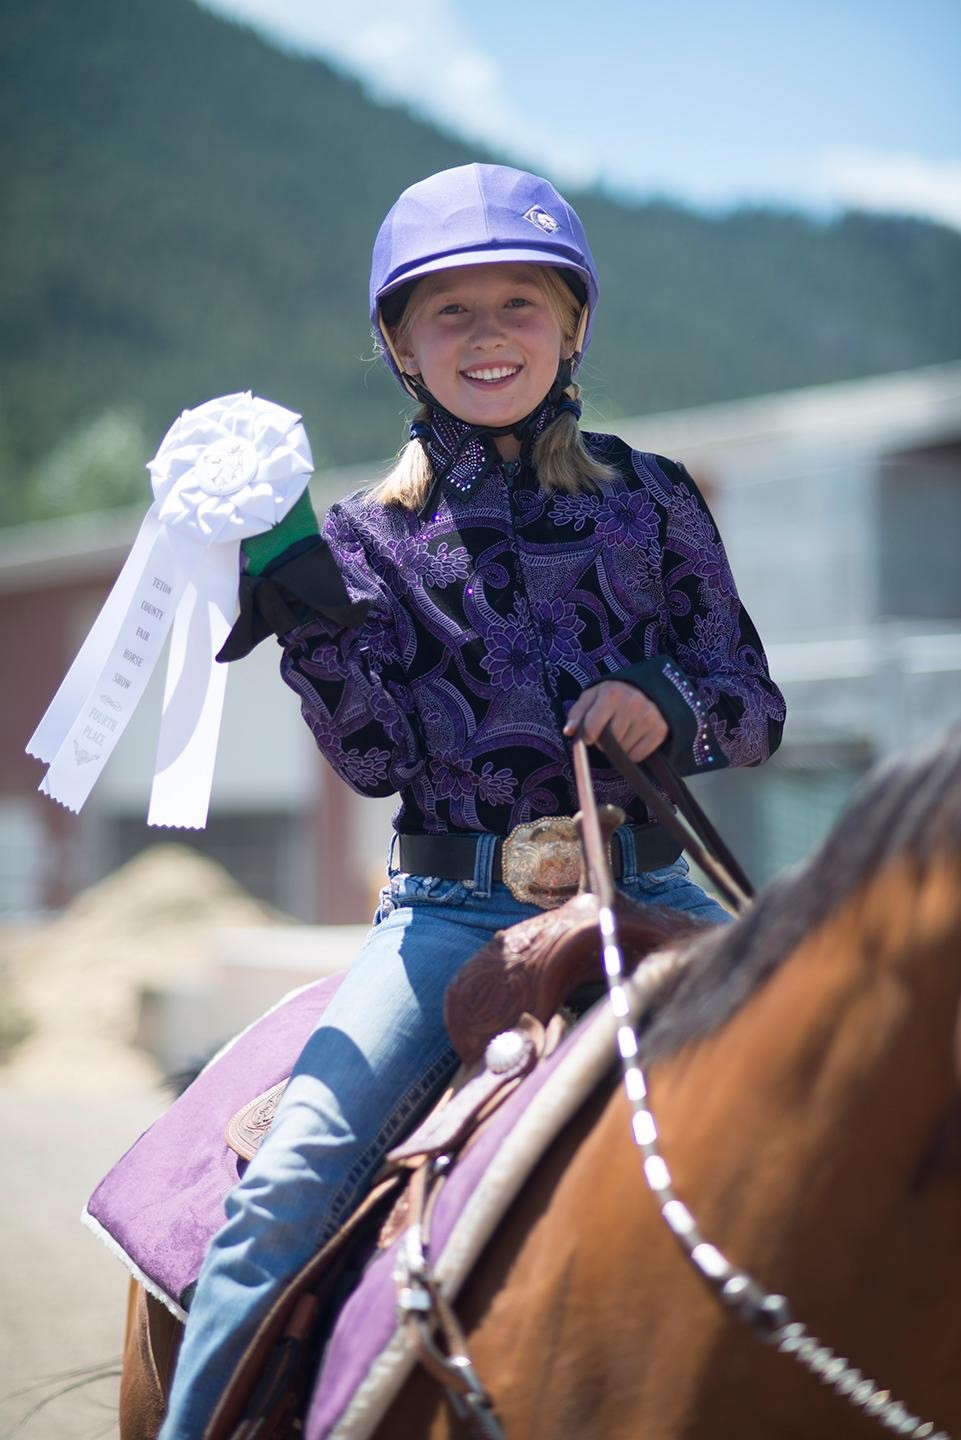 From Barrel Racing to Devon Champion: Maggie Hill's Multi-Disciplinary Approach Pays Off